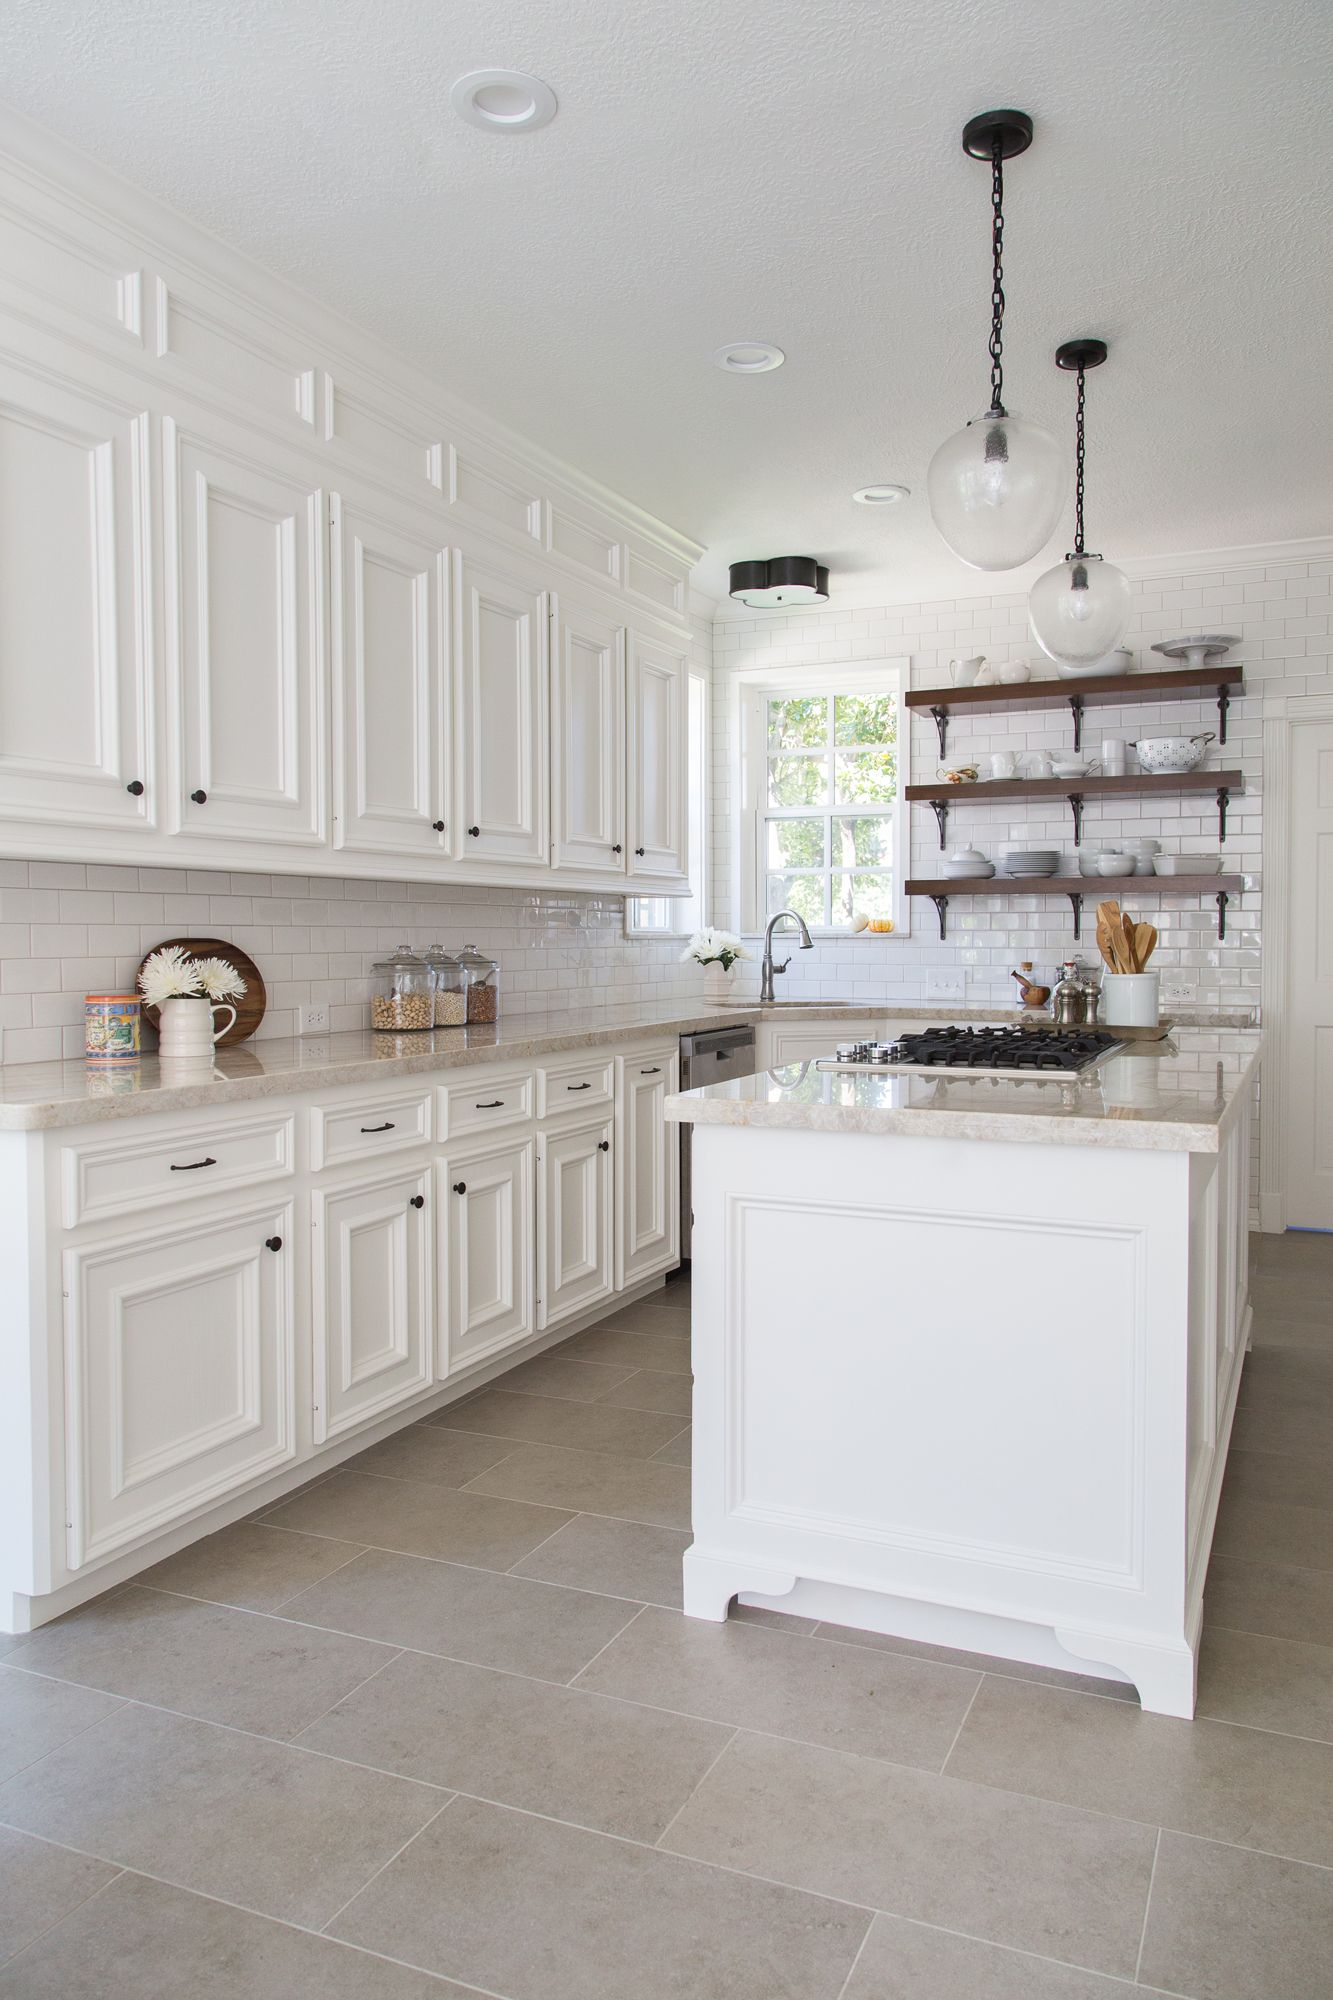 tile for kitchen floor BEFORE AFTER A Dark Dismal Kitchen Is Made Light And Bright Open shelving Cabinets and Tables